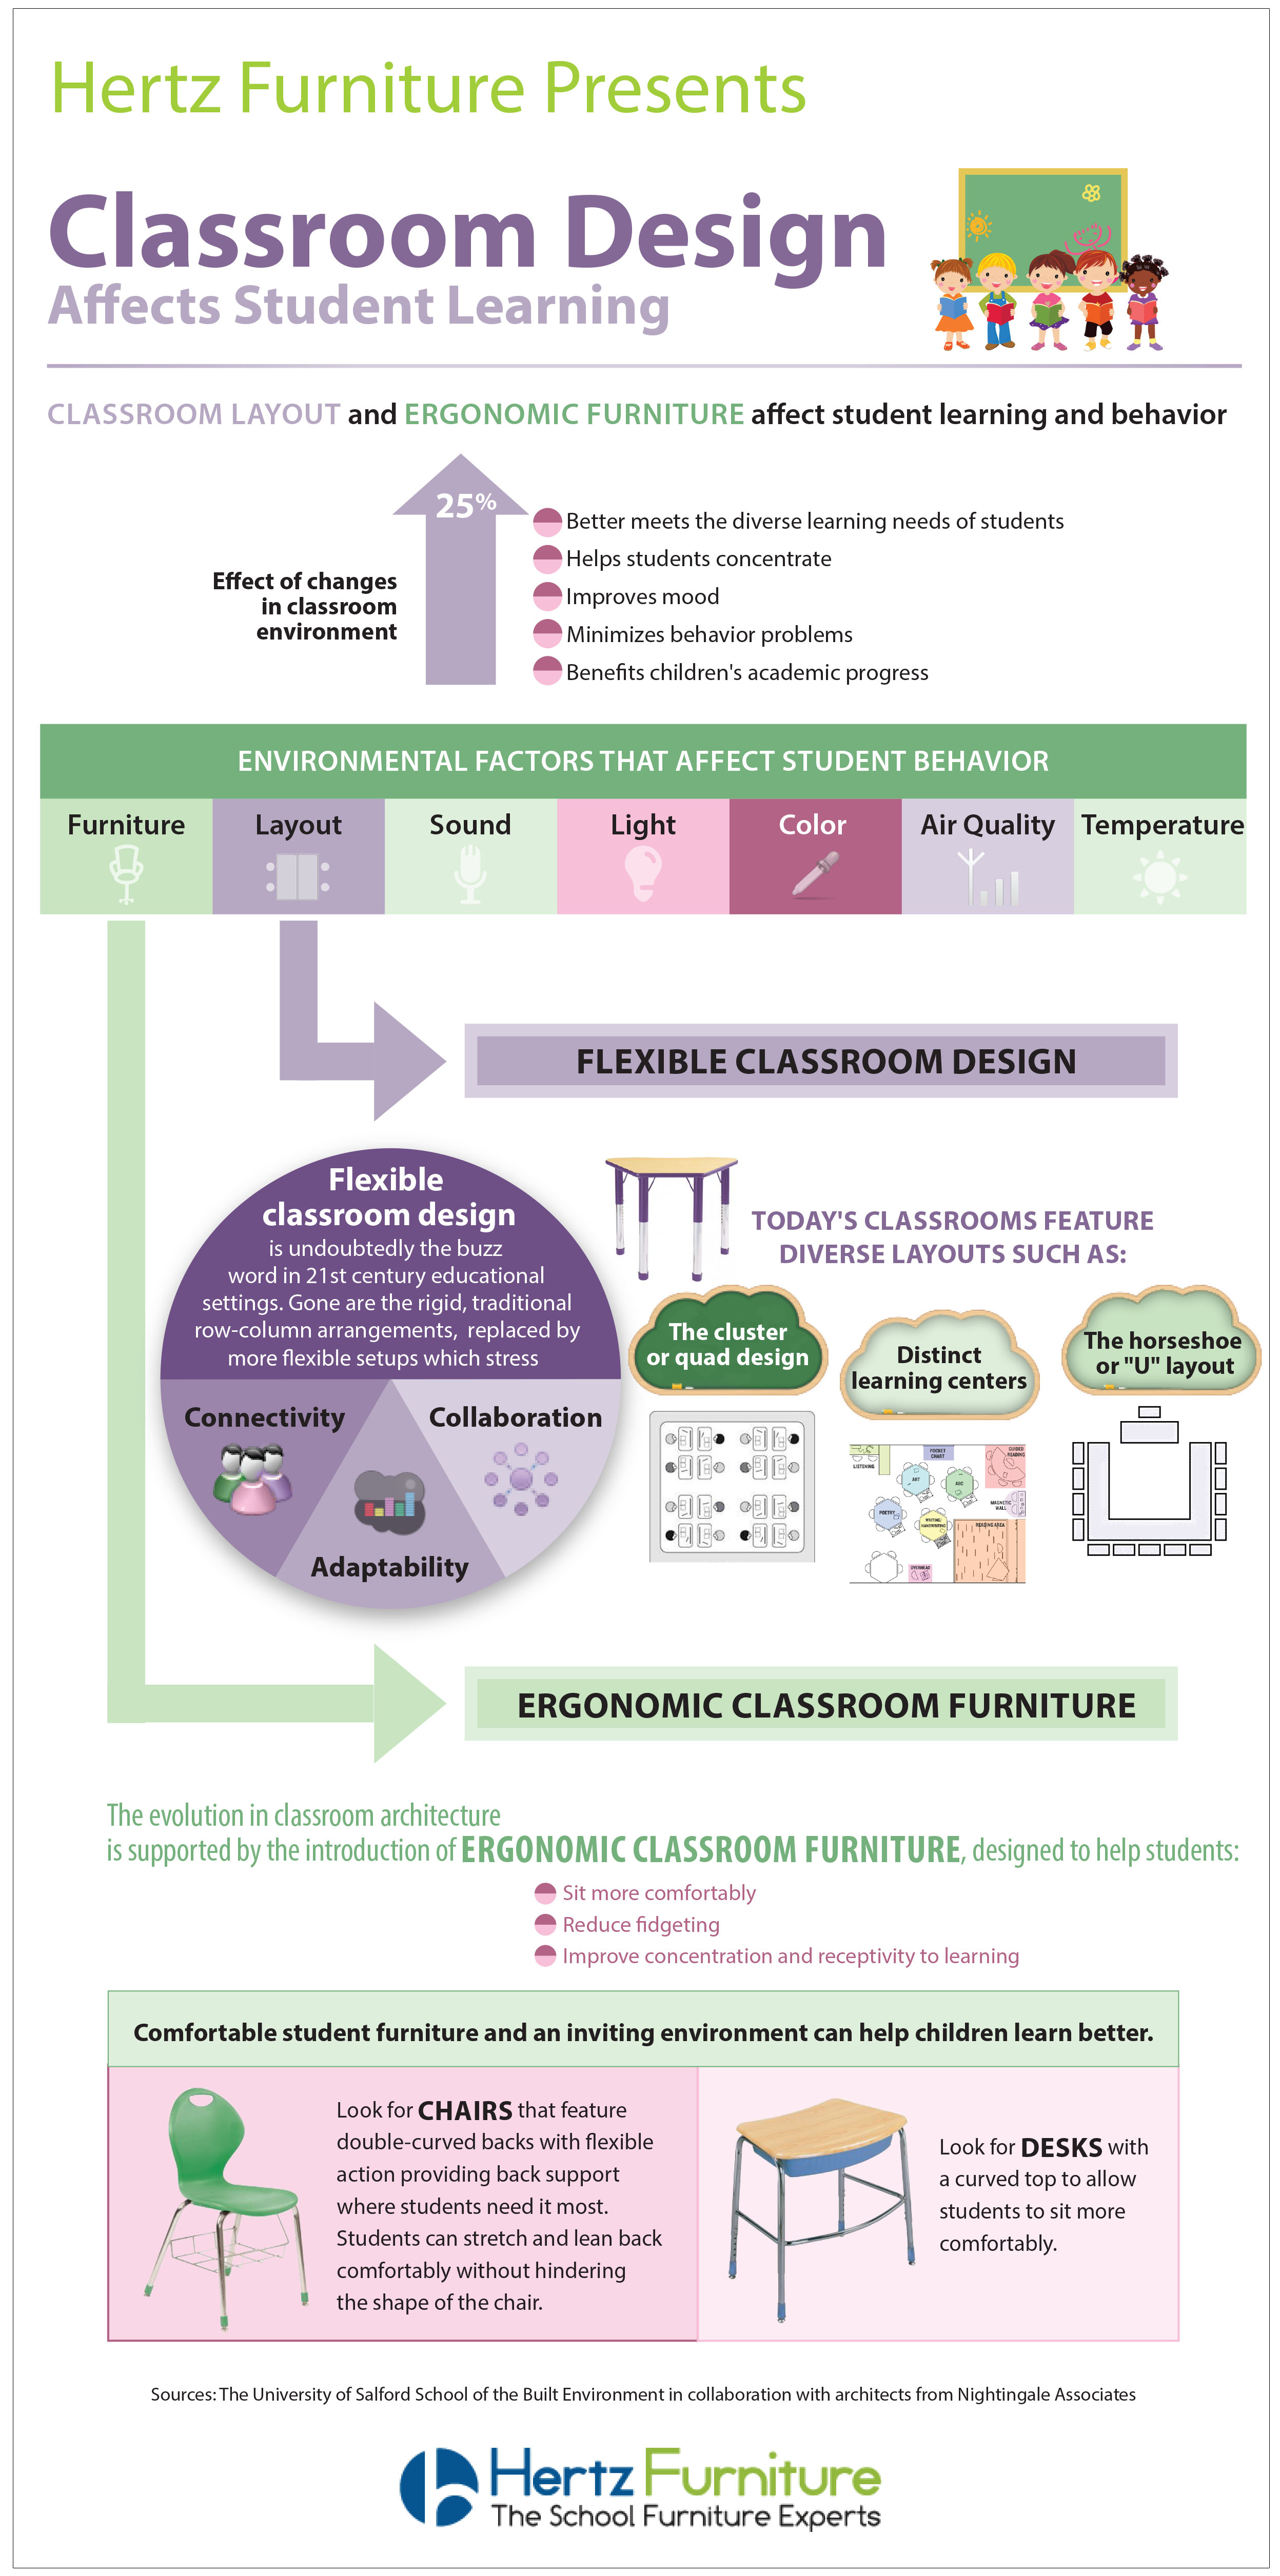 Classroom Design Affects Student Learning